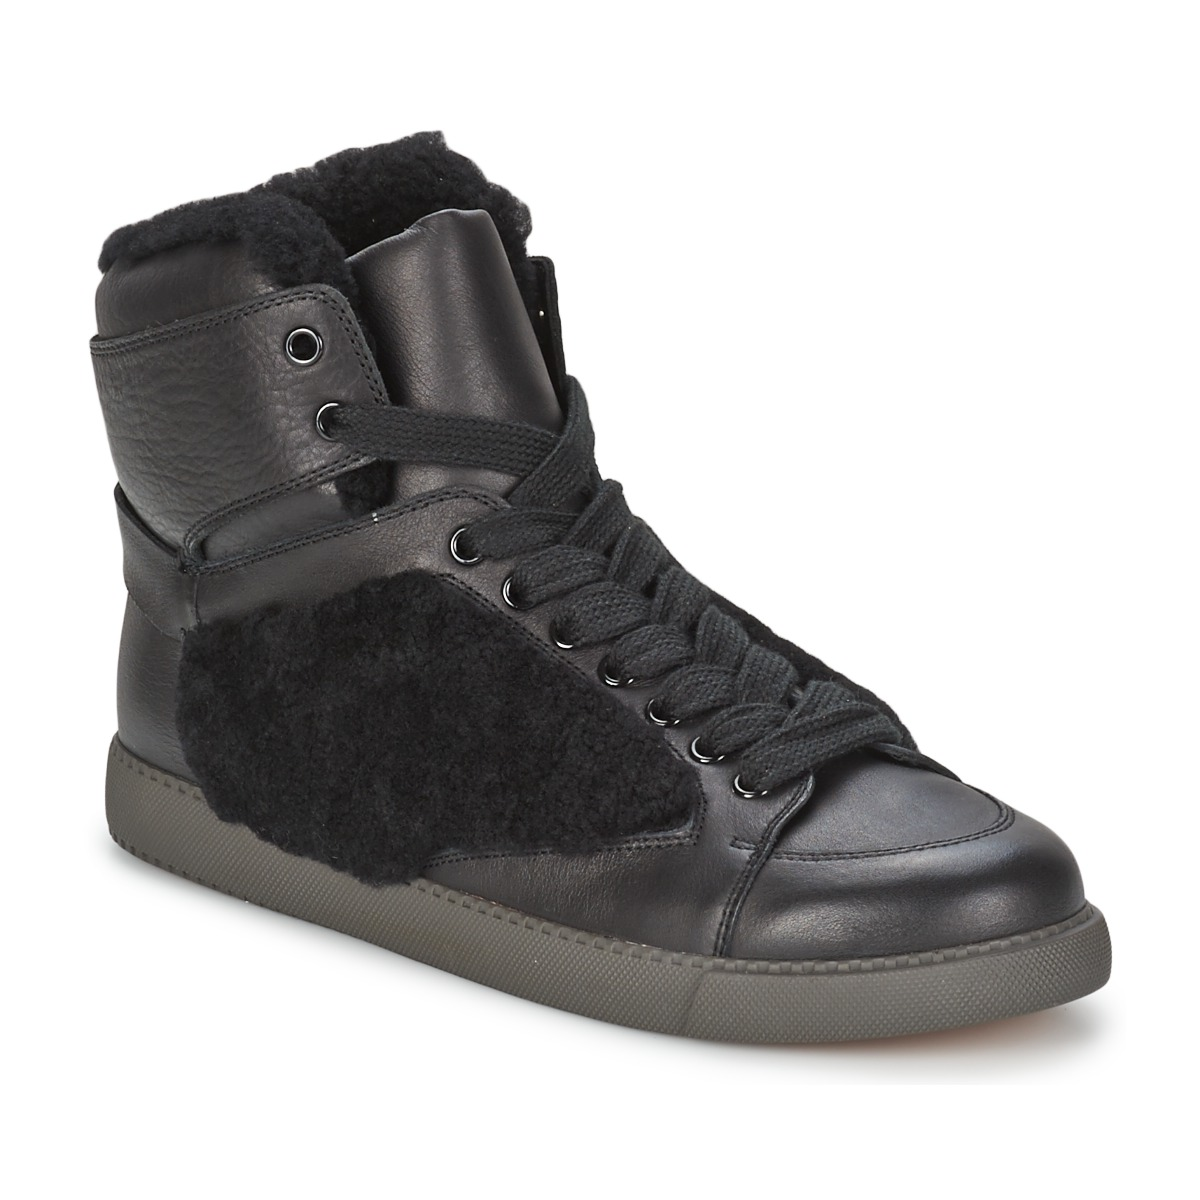 Sneakers See by Chloé  SB23158